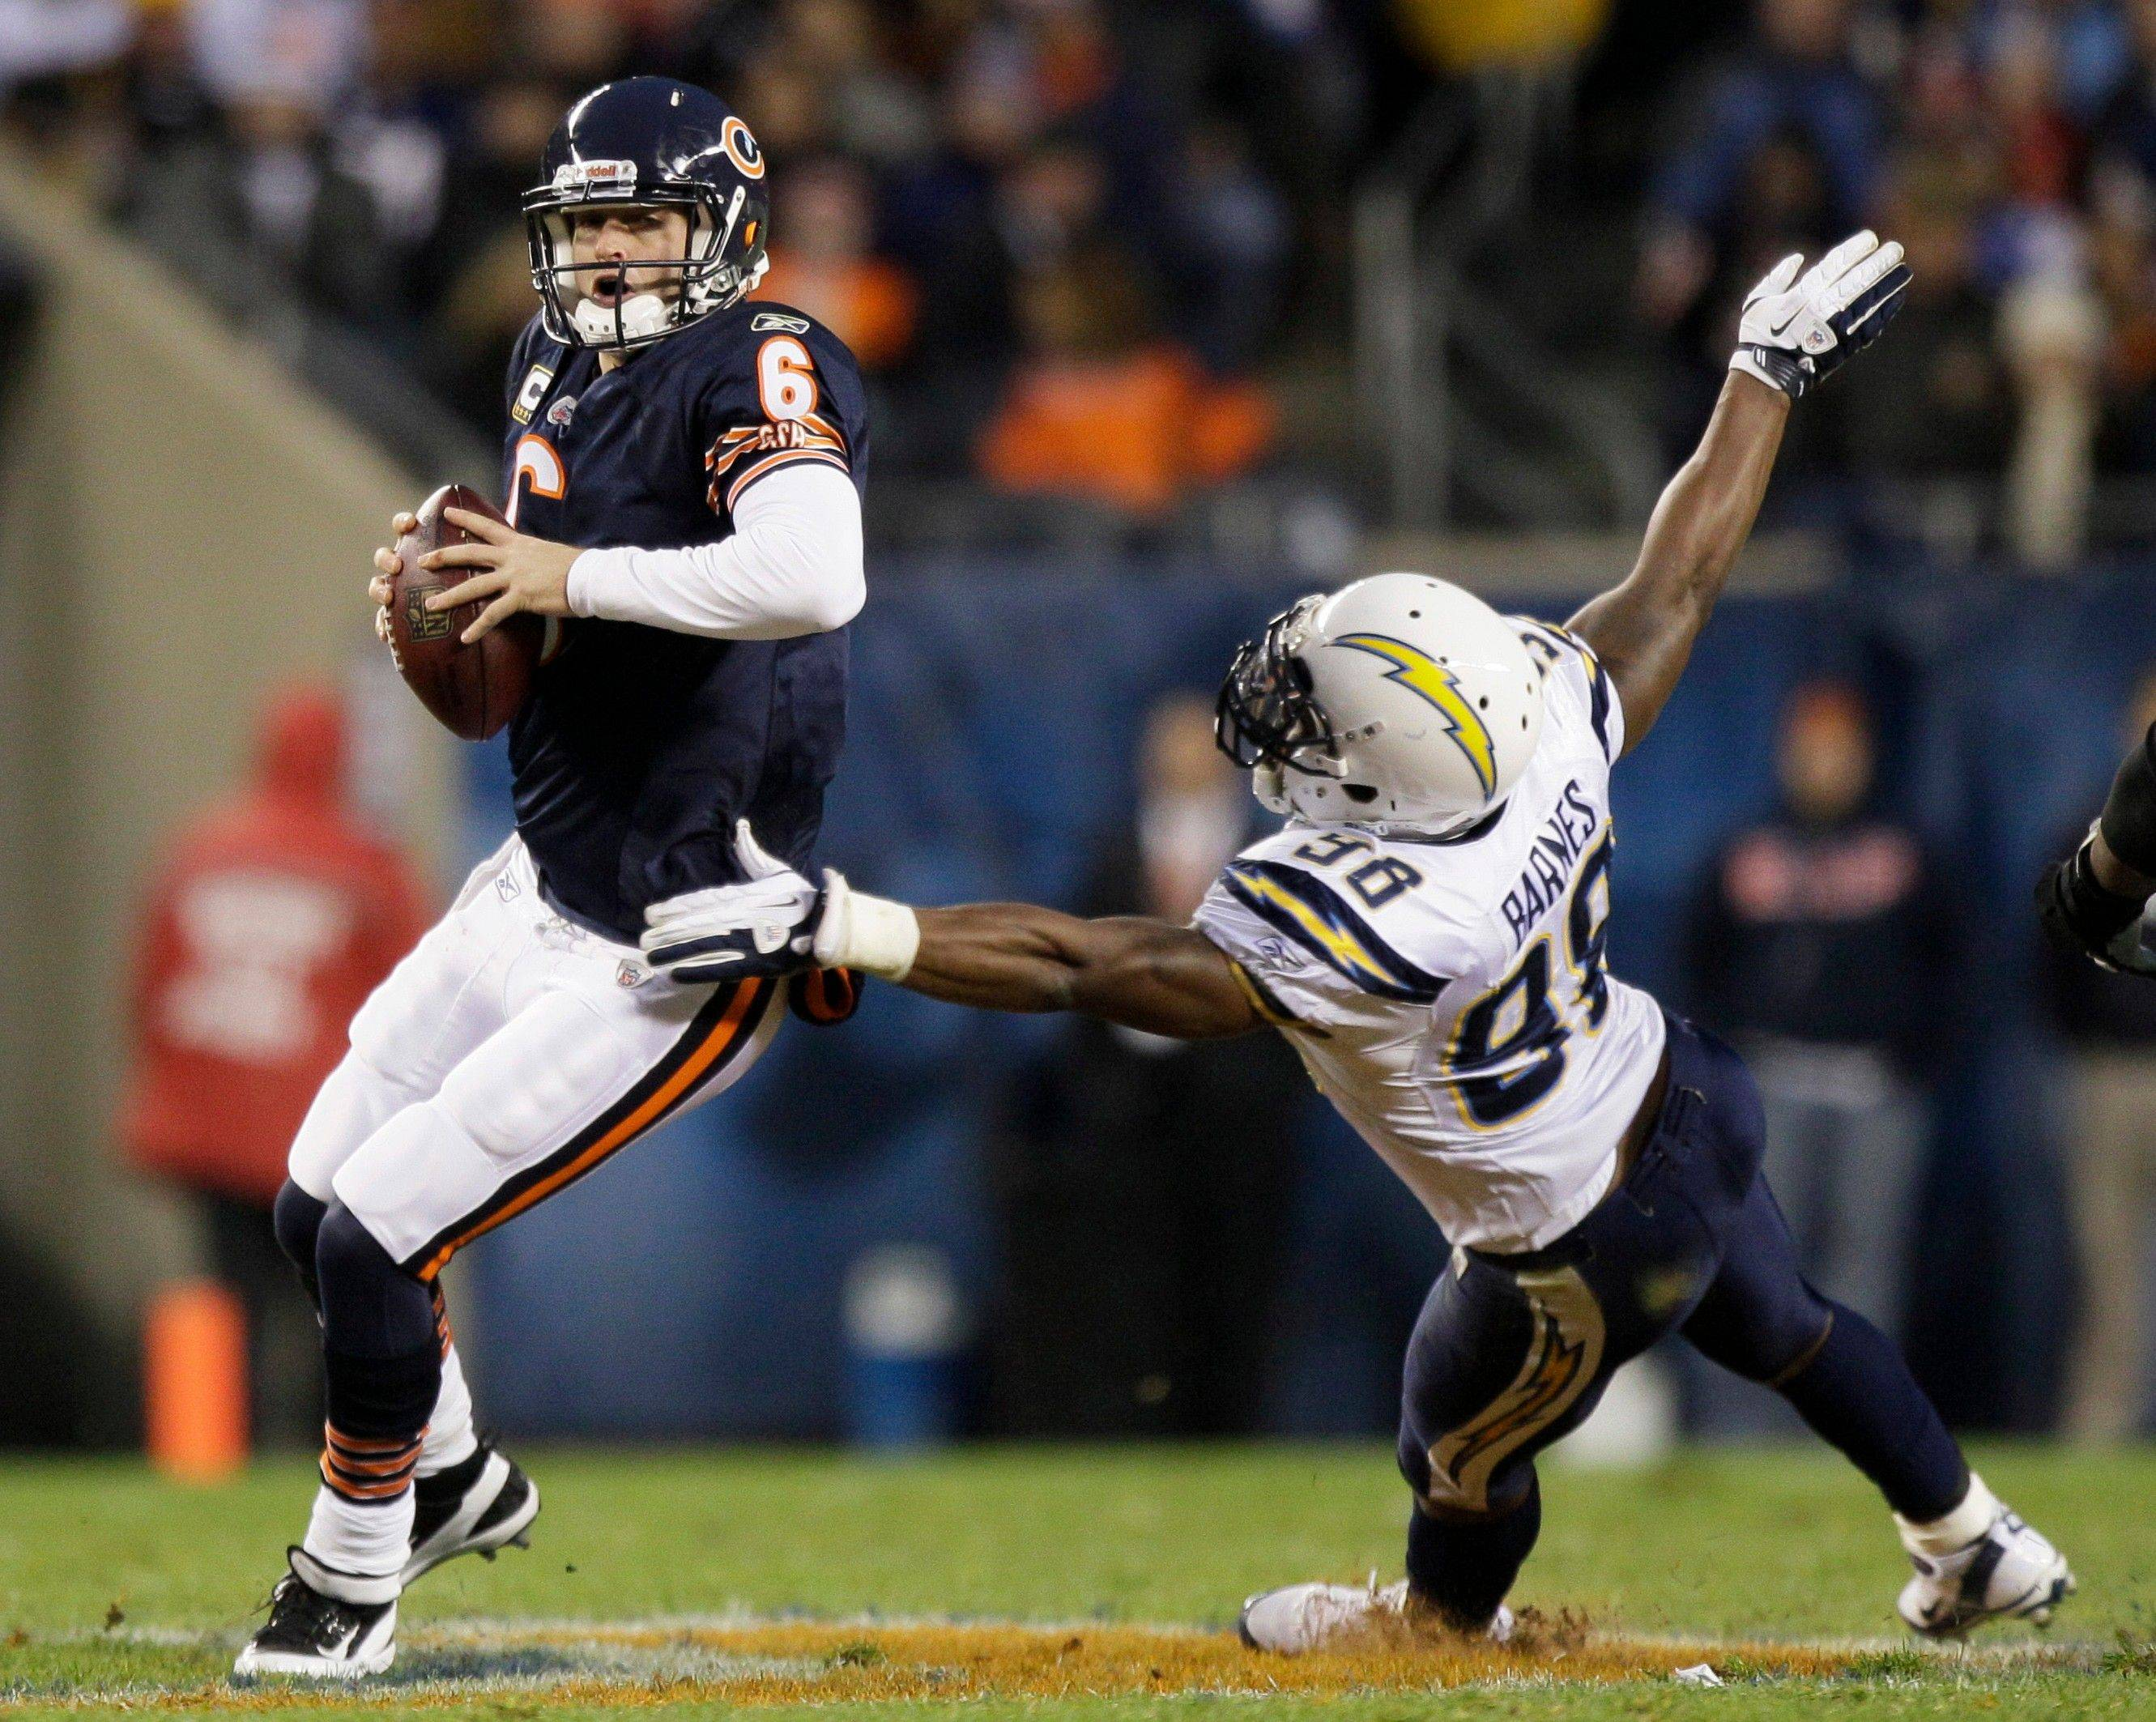 Bears quarterback Jay Cutler looks to pass while under pressure from Chargers linebacker Antwan Barnes in the first half Sunday at Soldier Field.